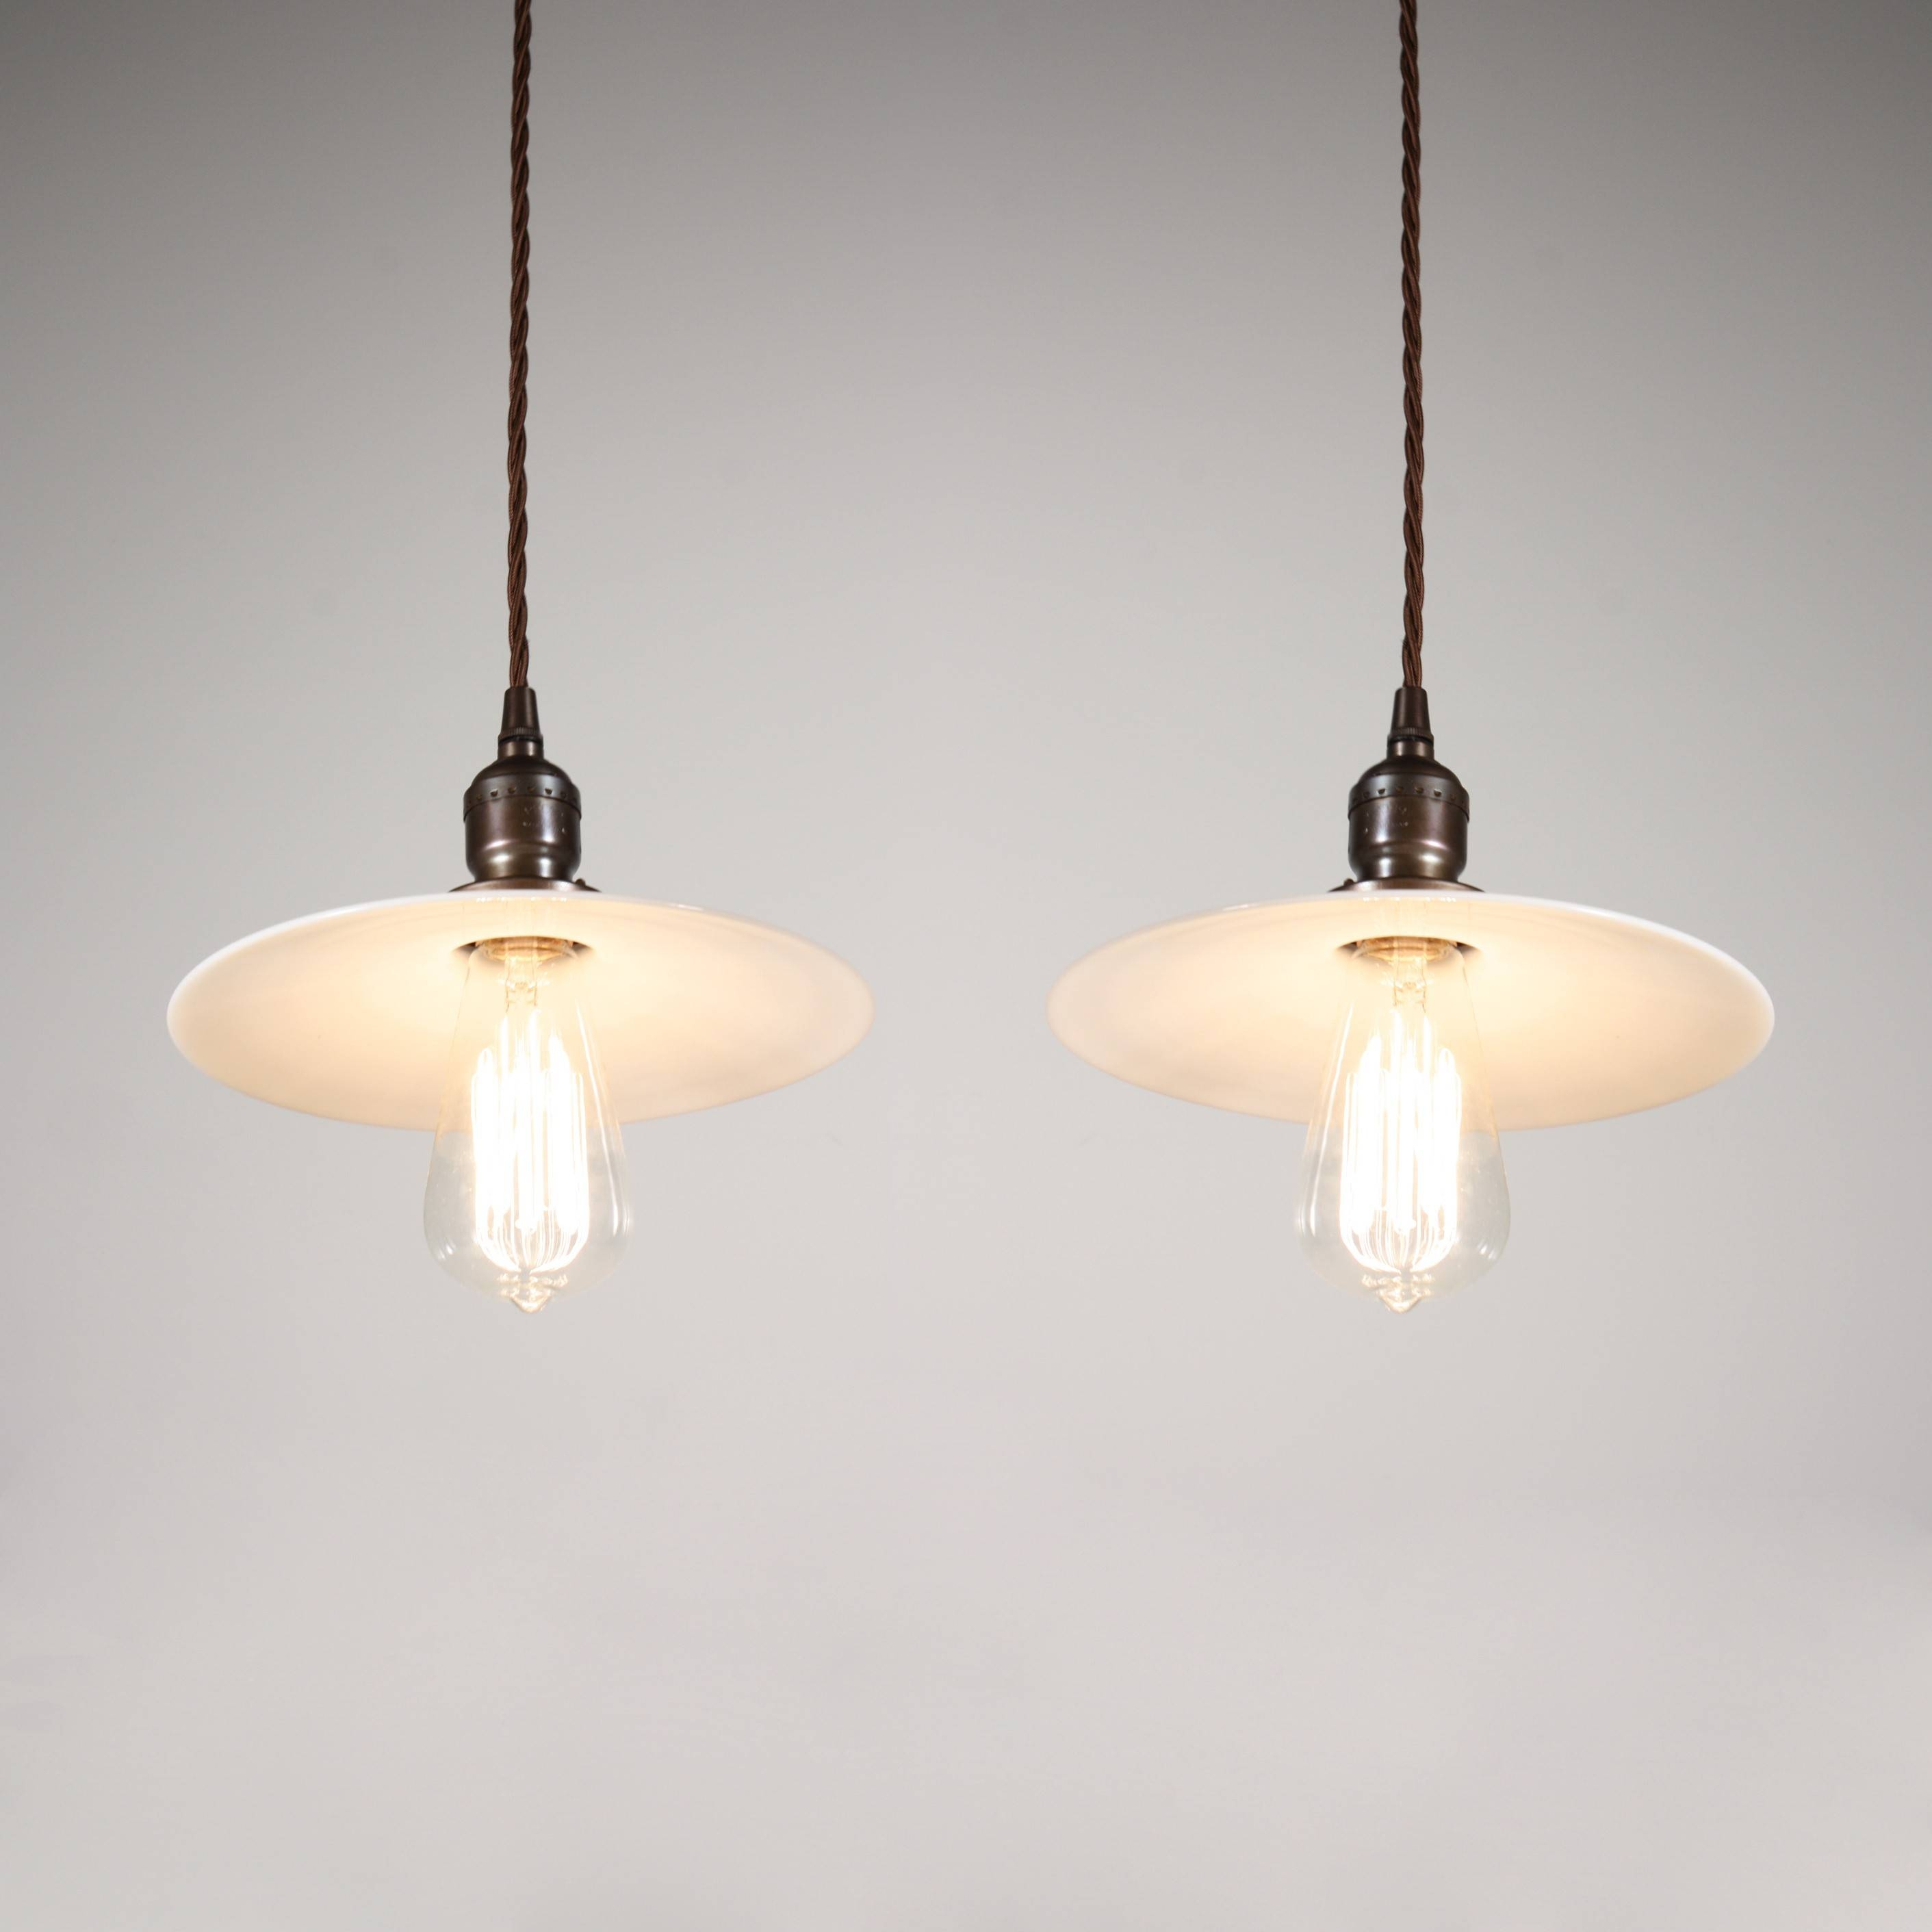 Two Matching Antique Industrial Pendant Lights With Milk Glass with regard to Milk Glass Pendant Light Fixtures (Image 13 of 15)